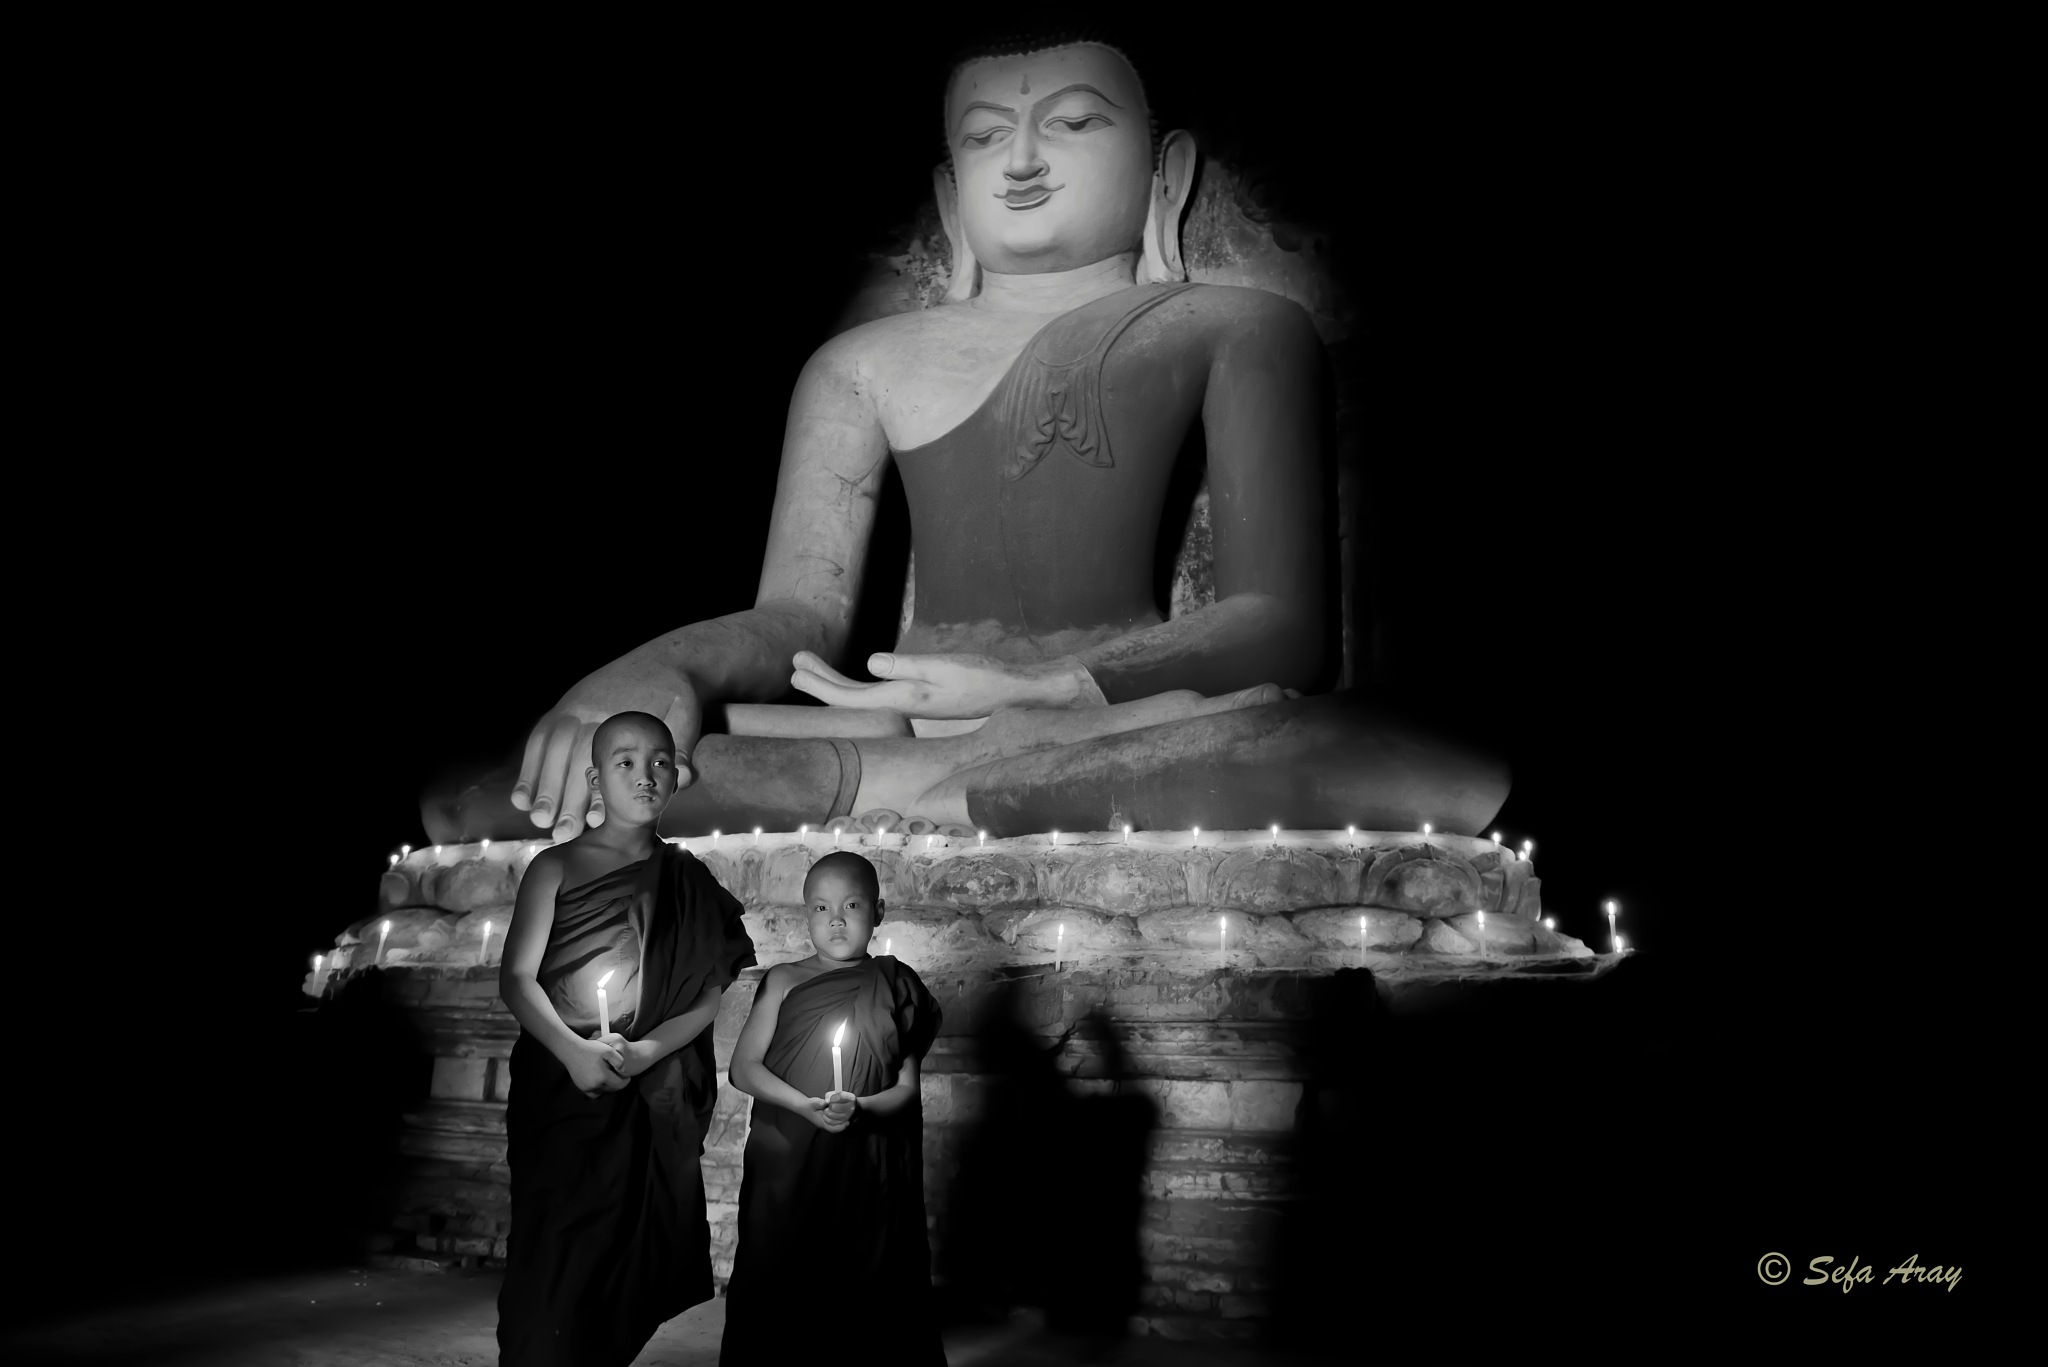 Buddha and Student Monk by Sefa Aray